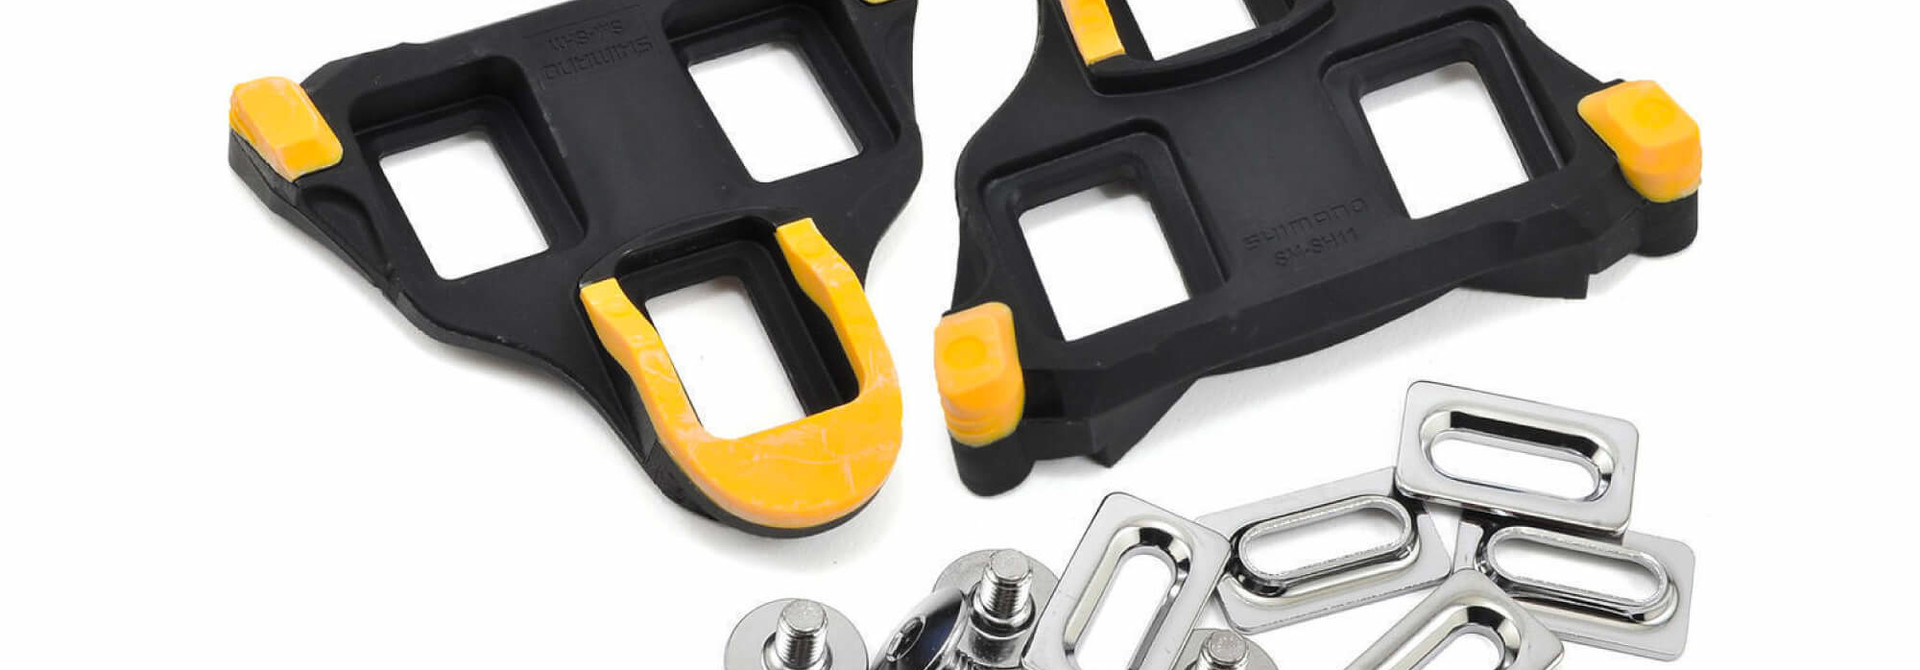 SM-SH11 Spd-Sl Cleat Set Floating Mode - Yellow